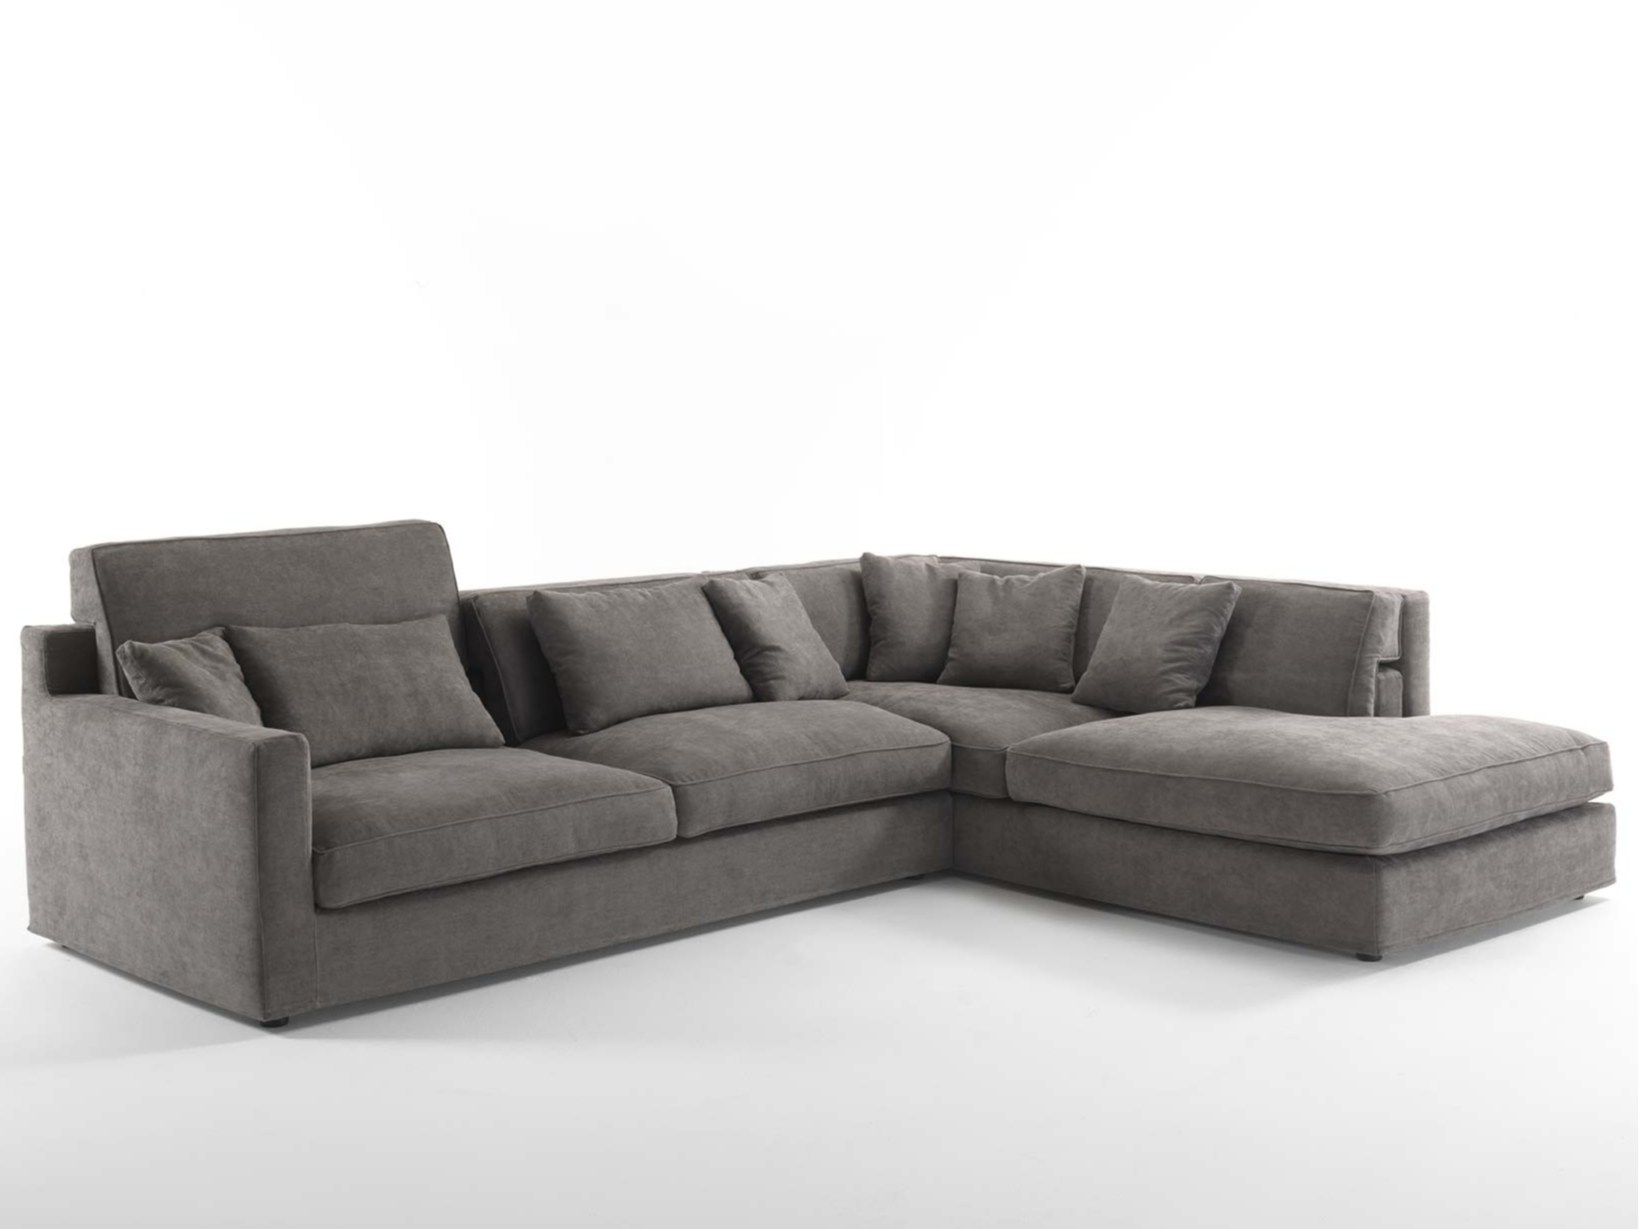 Jordan sectional sofa by frigerio salotti for Poltrone e sofa genova